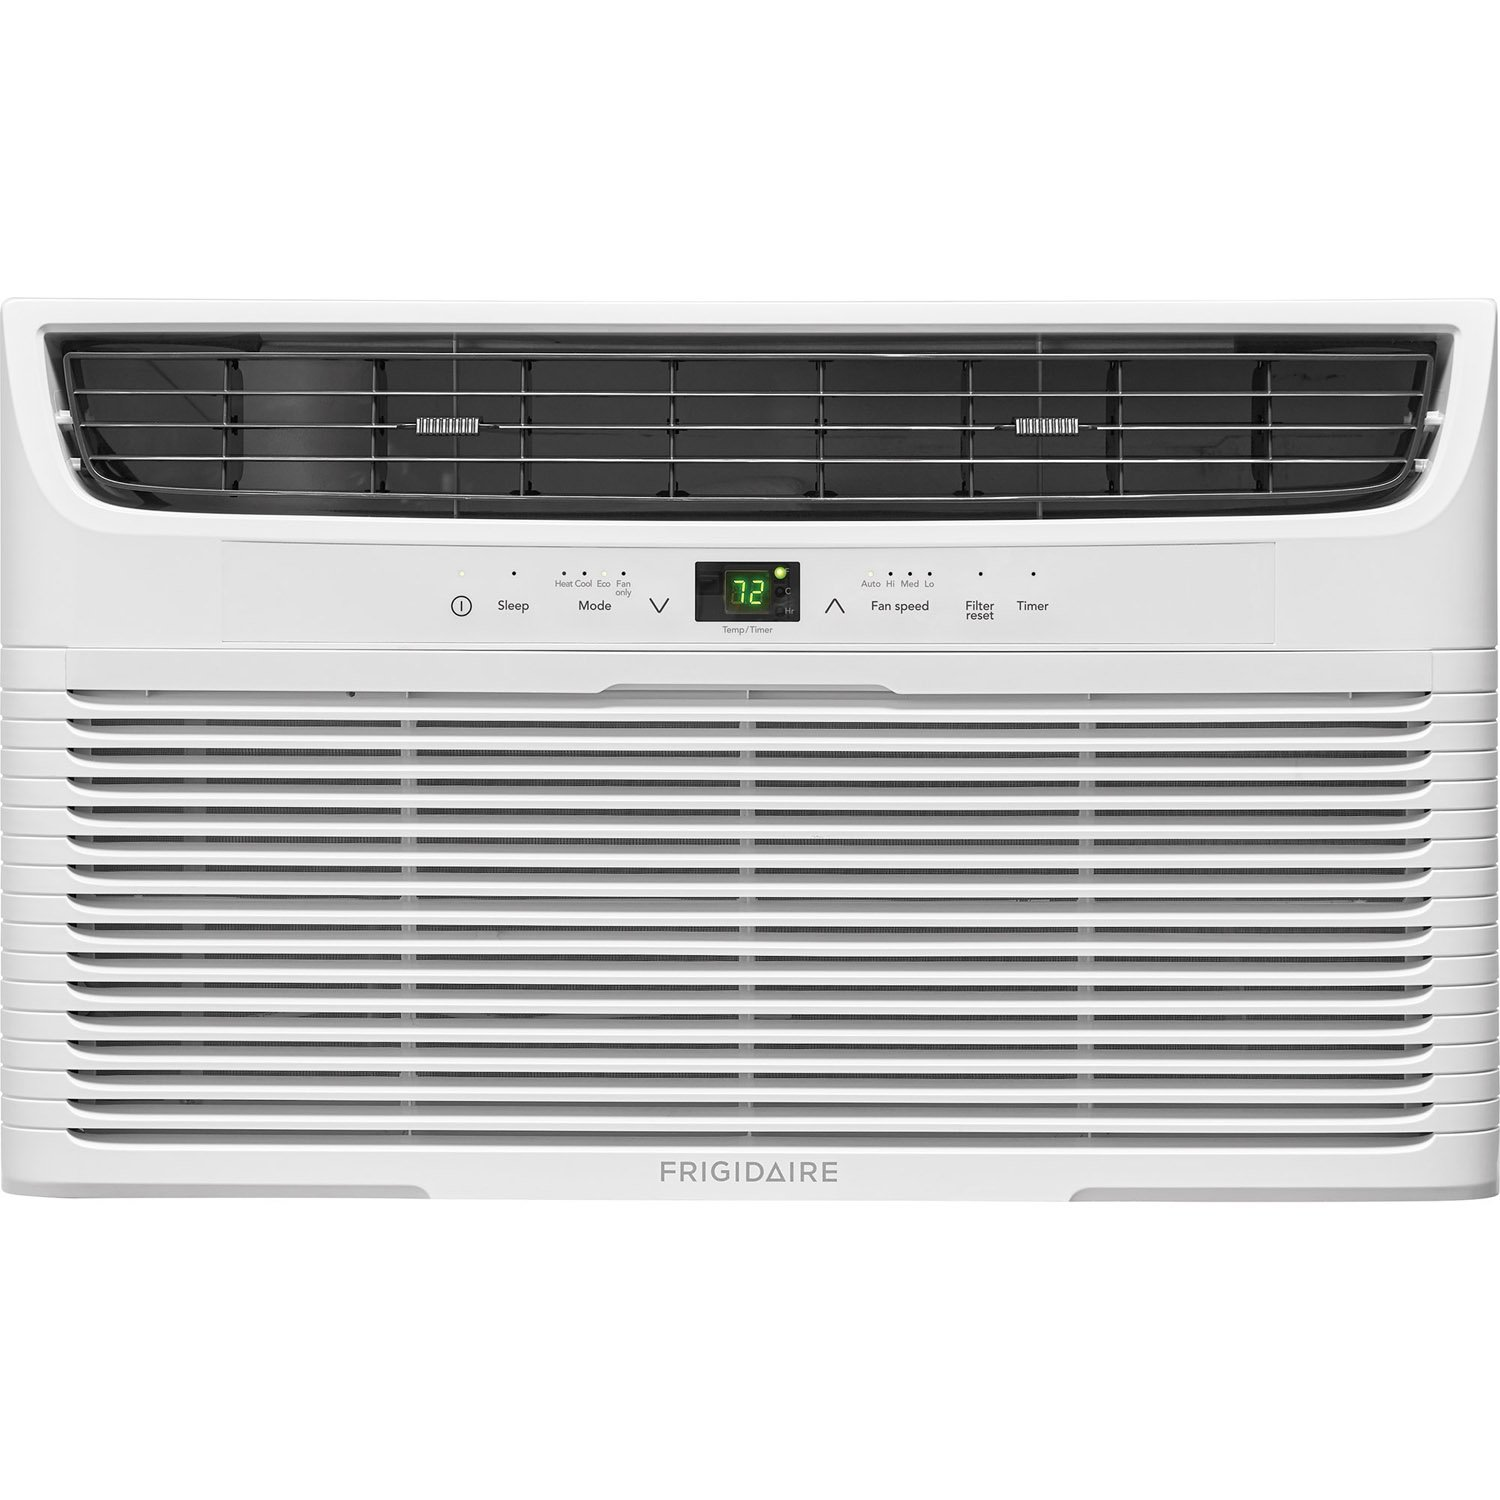 Frigidaire Home Comfort White 14,000 BTU 9.4 Eer Through-The-Wall Air Conditioner With Heat - FFTH1422U2